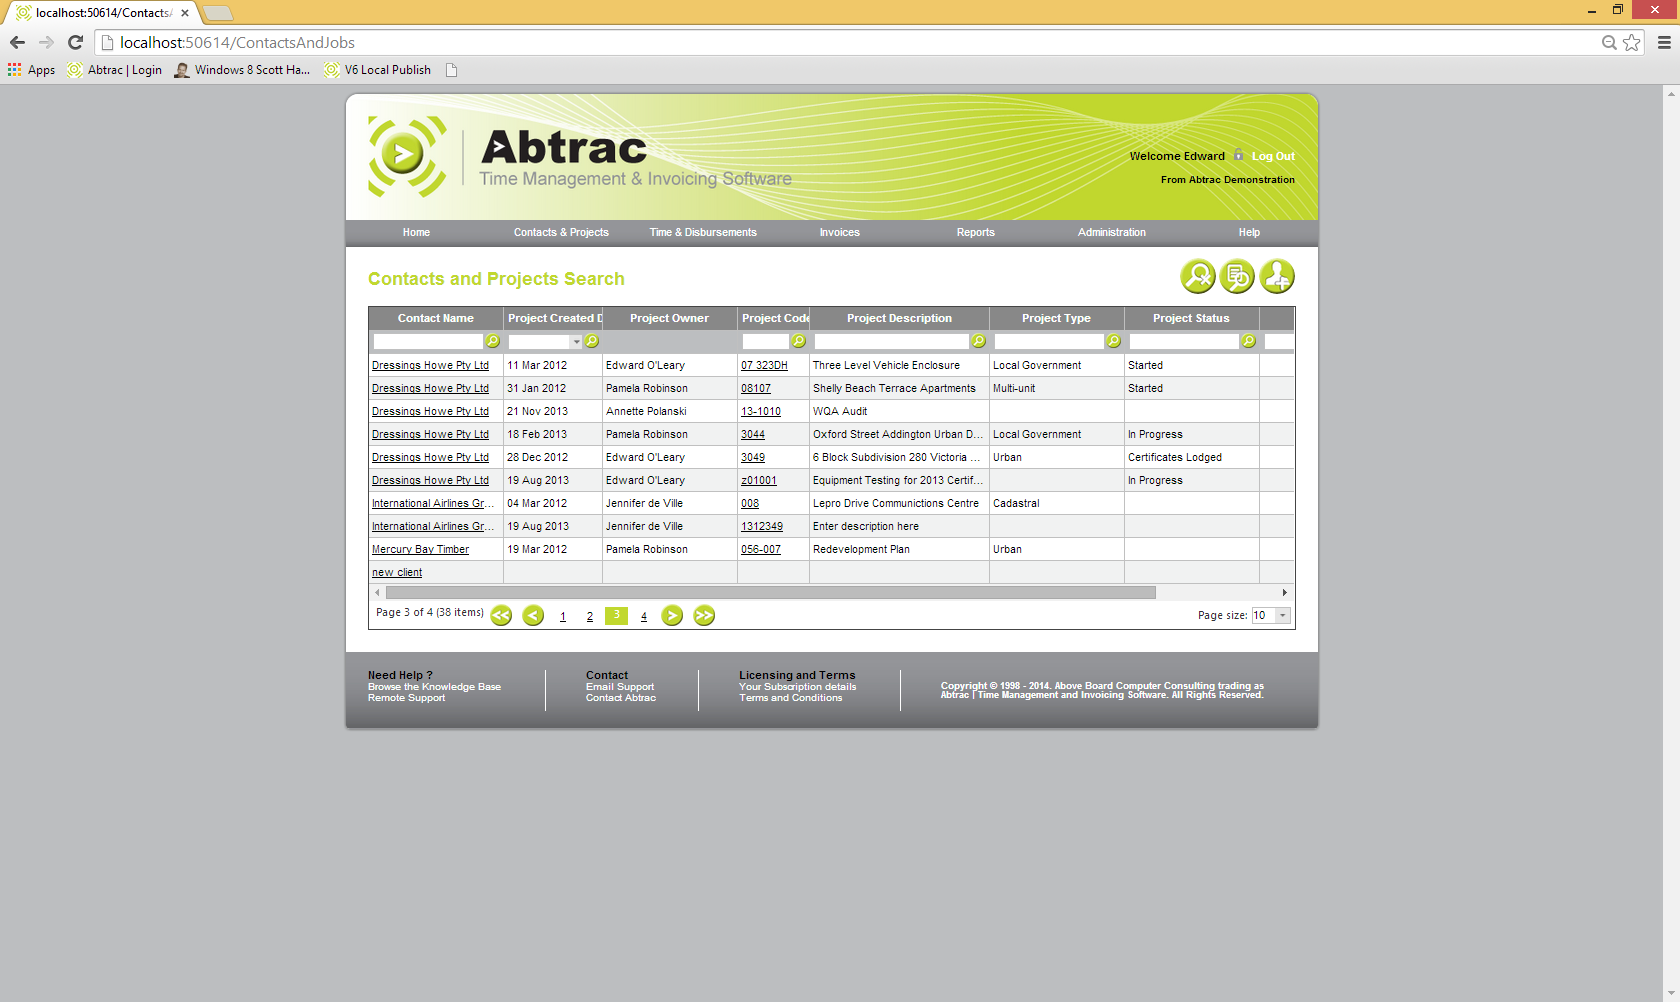 Abtrac Time Management & Invoicing Software Demo - SearchScreen.png